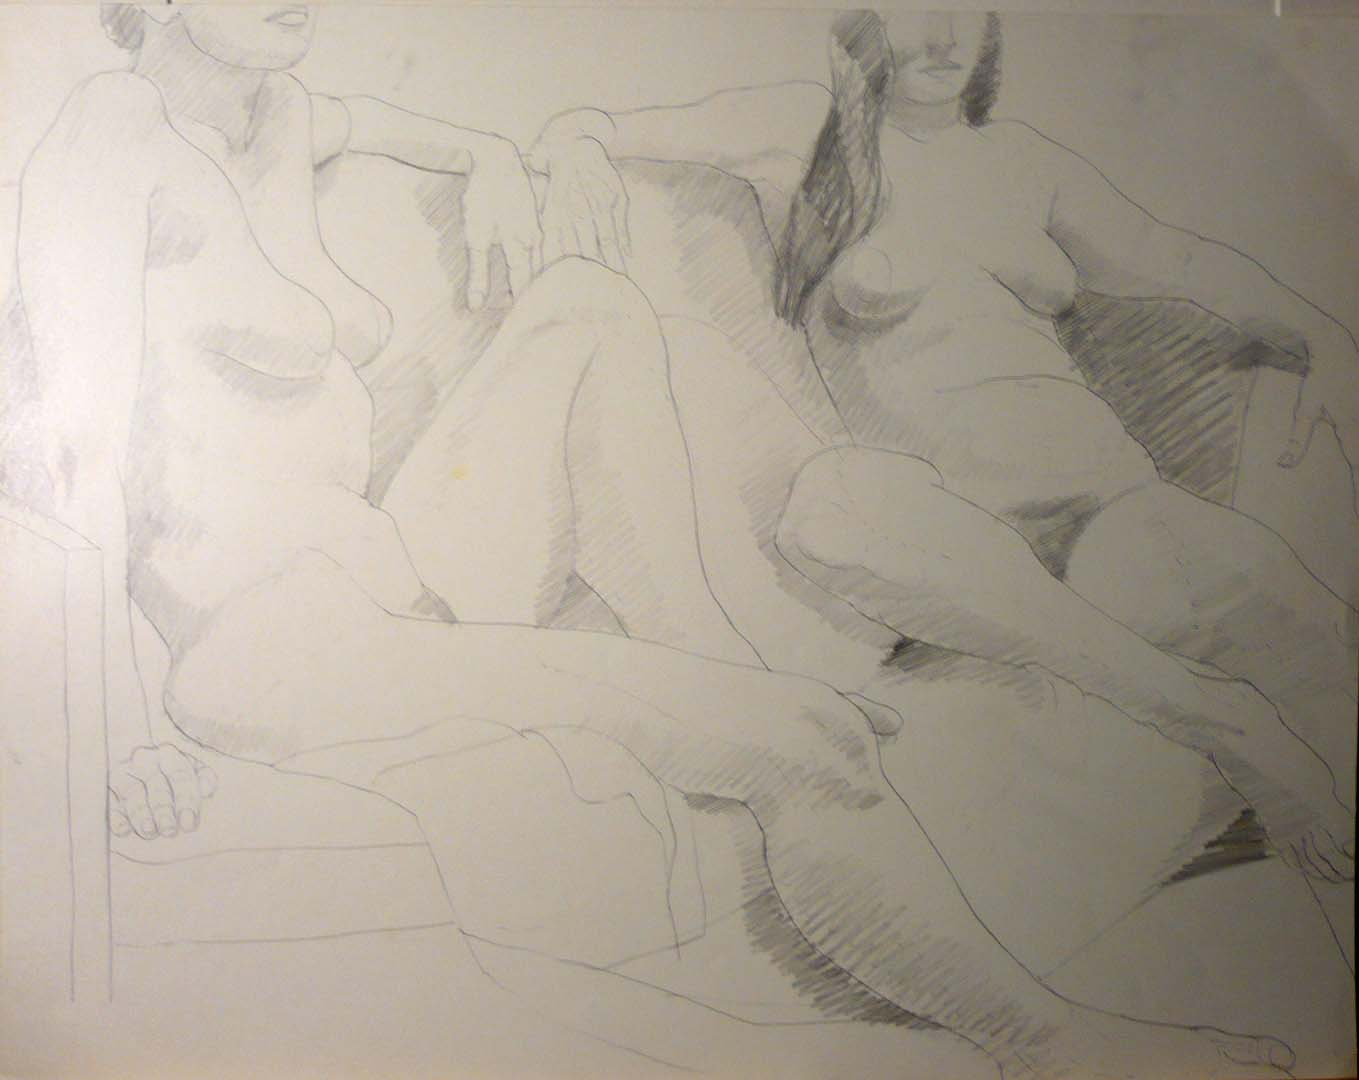 Two Seated Models on Sofa Pencil 18.75 x 24